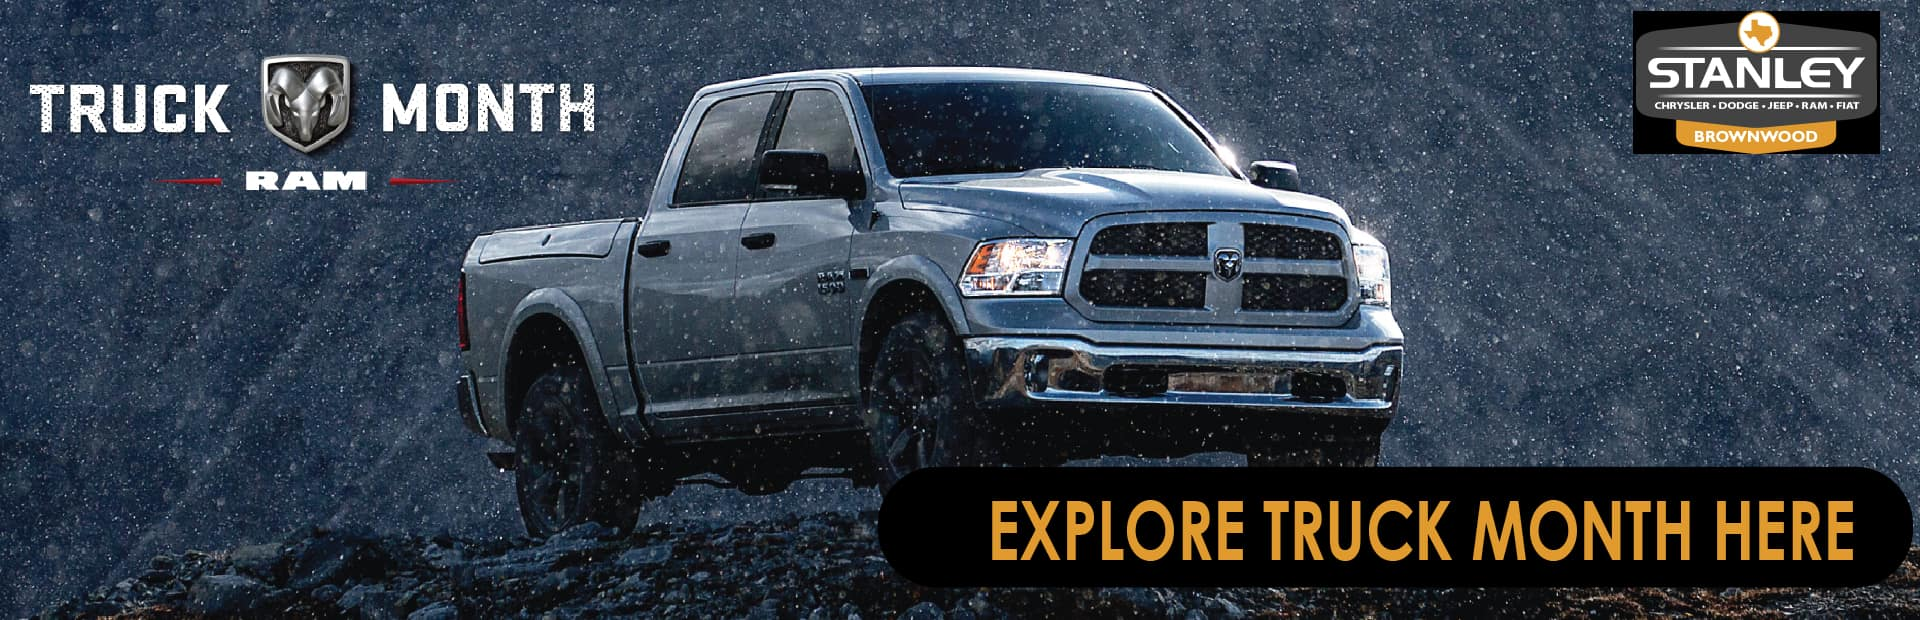 Explore Truck Month Here